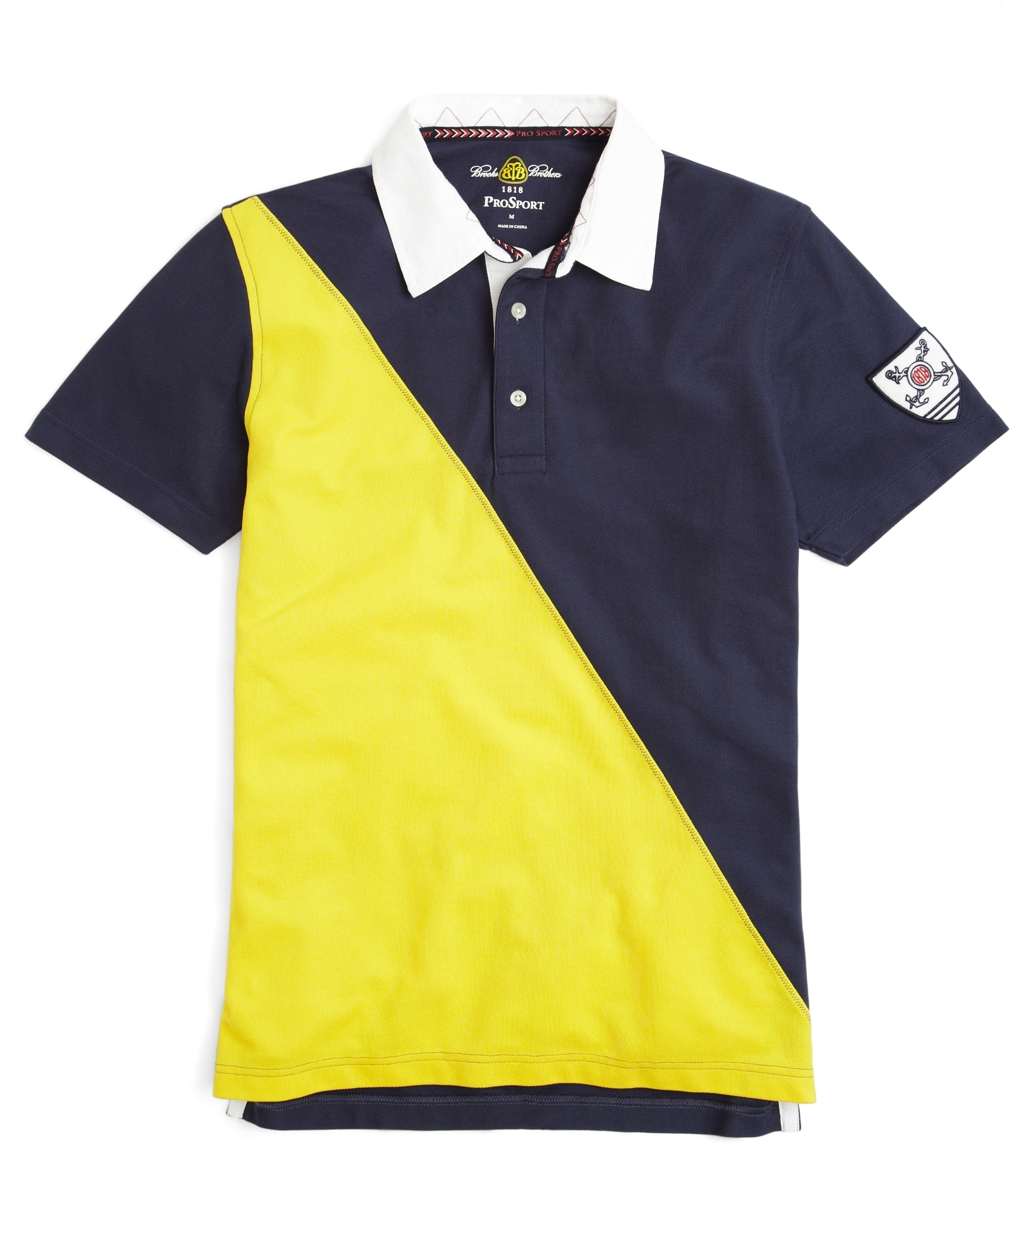 Brooks brothers prosporttm diagonal color block polo shirt for Polo color block shirt